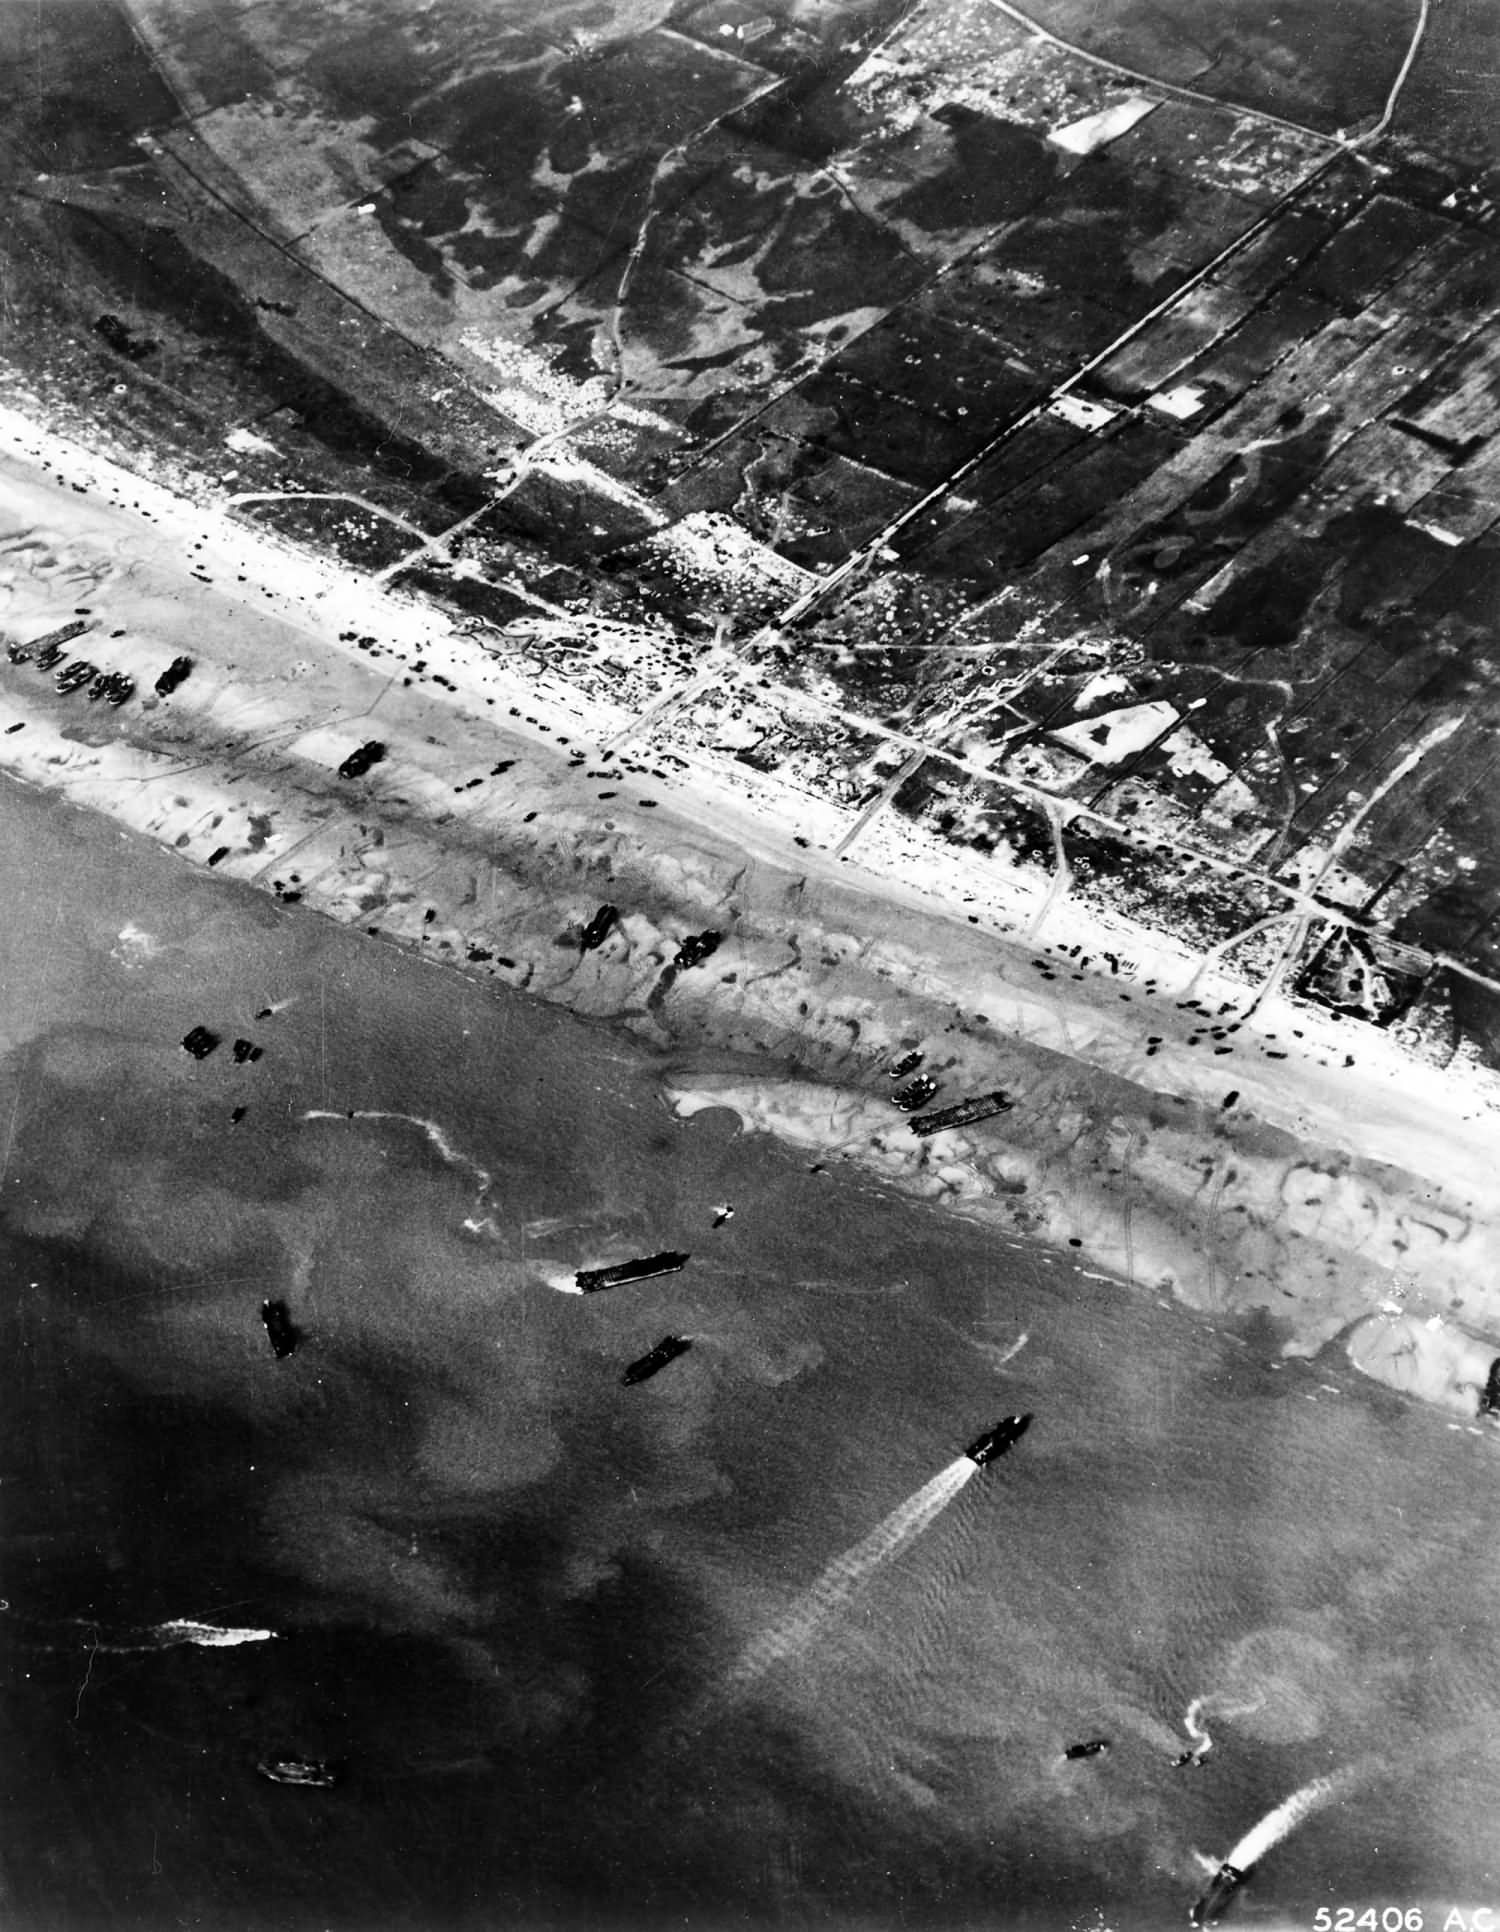 Normandy beach photographed from a plane